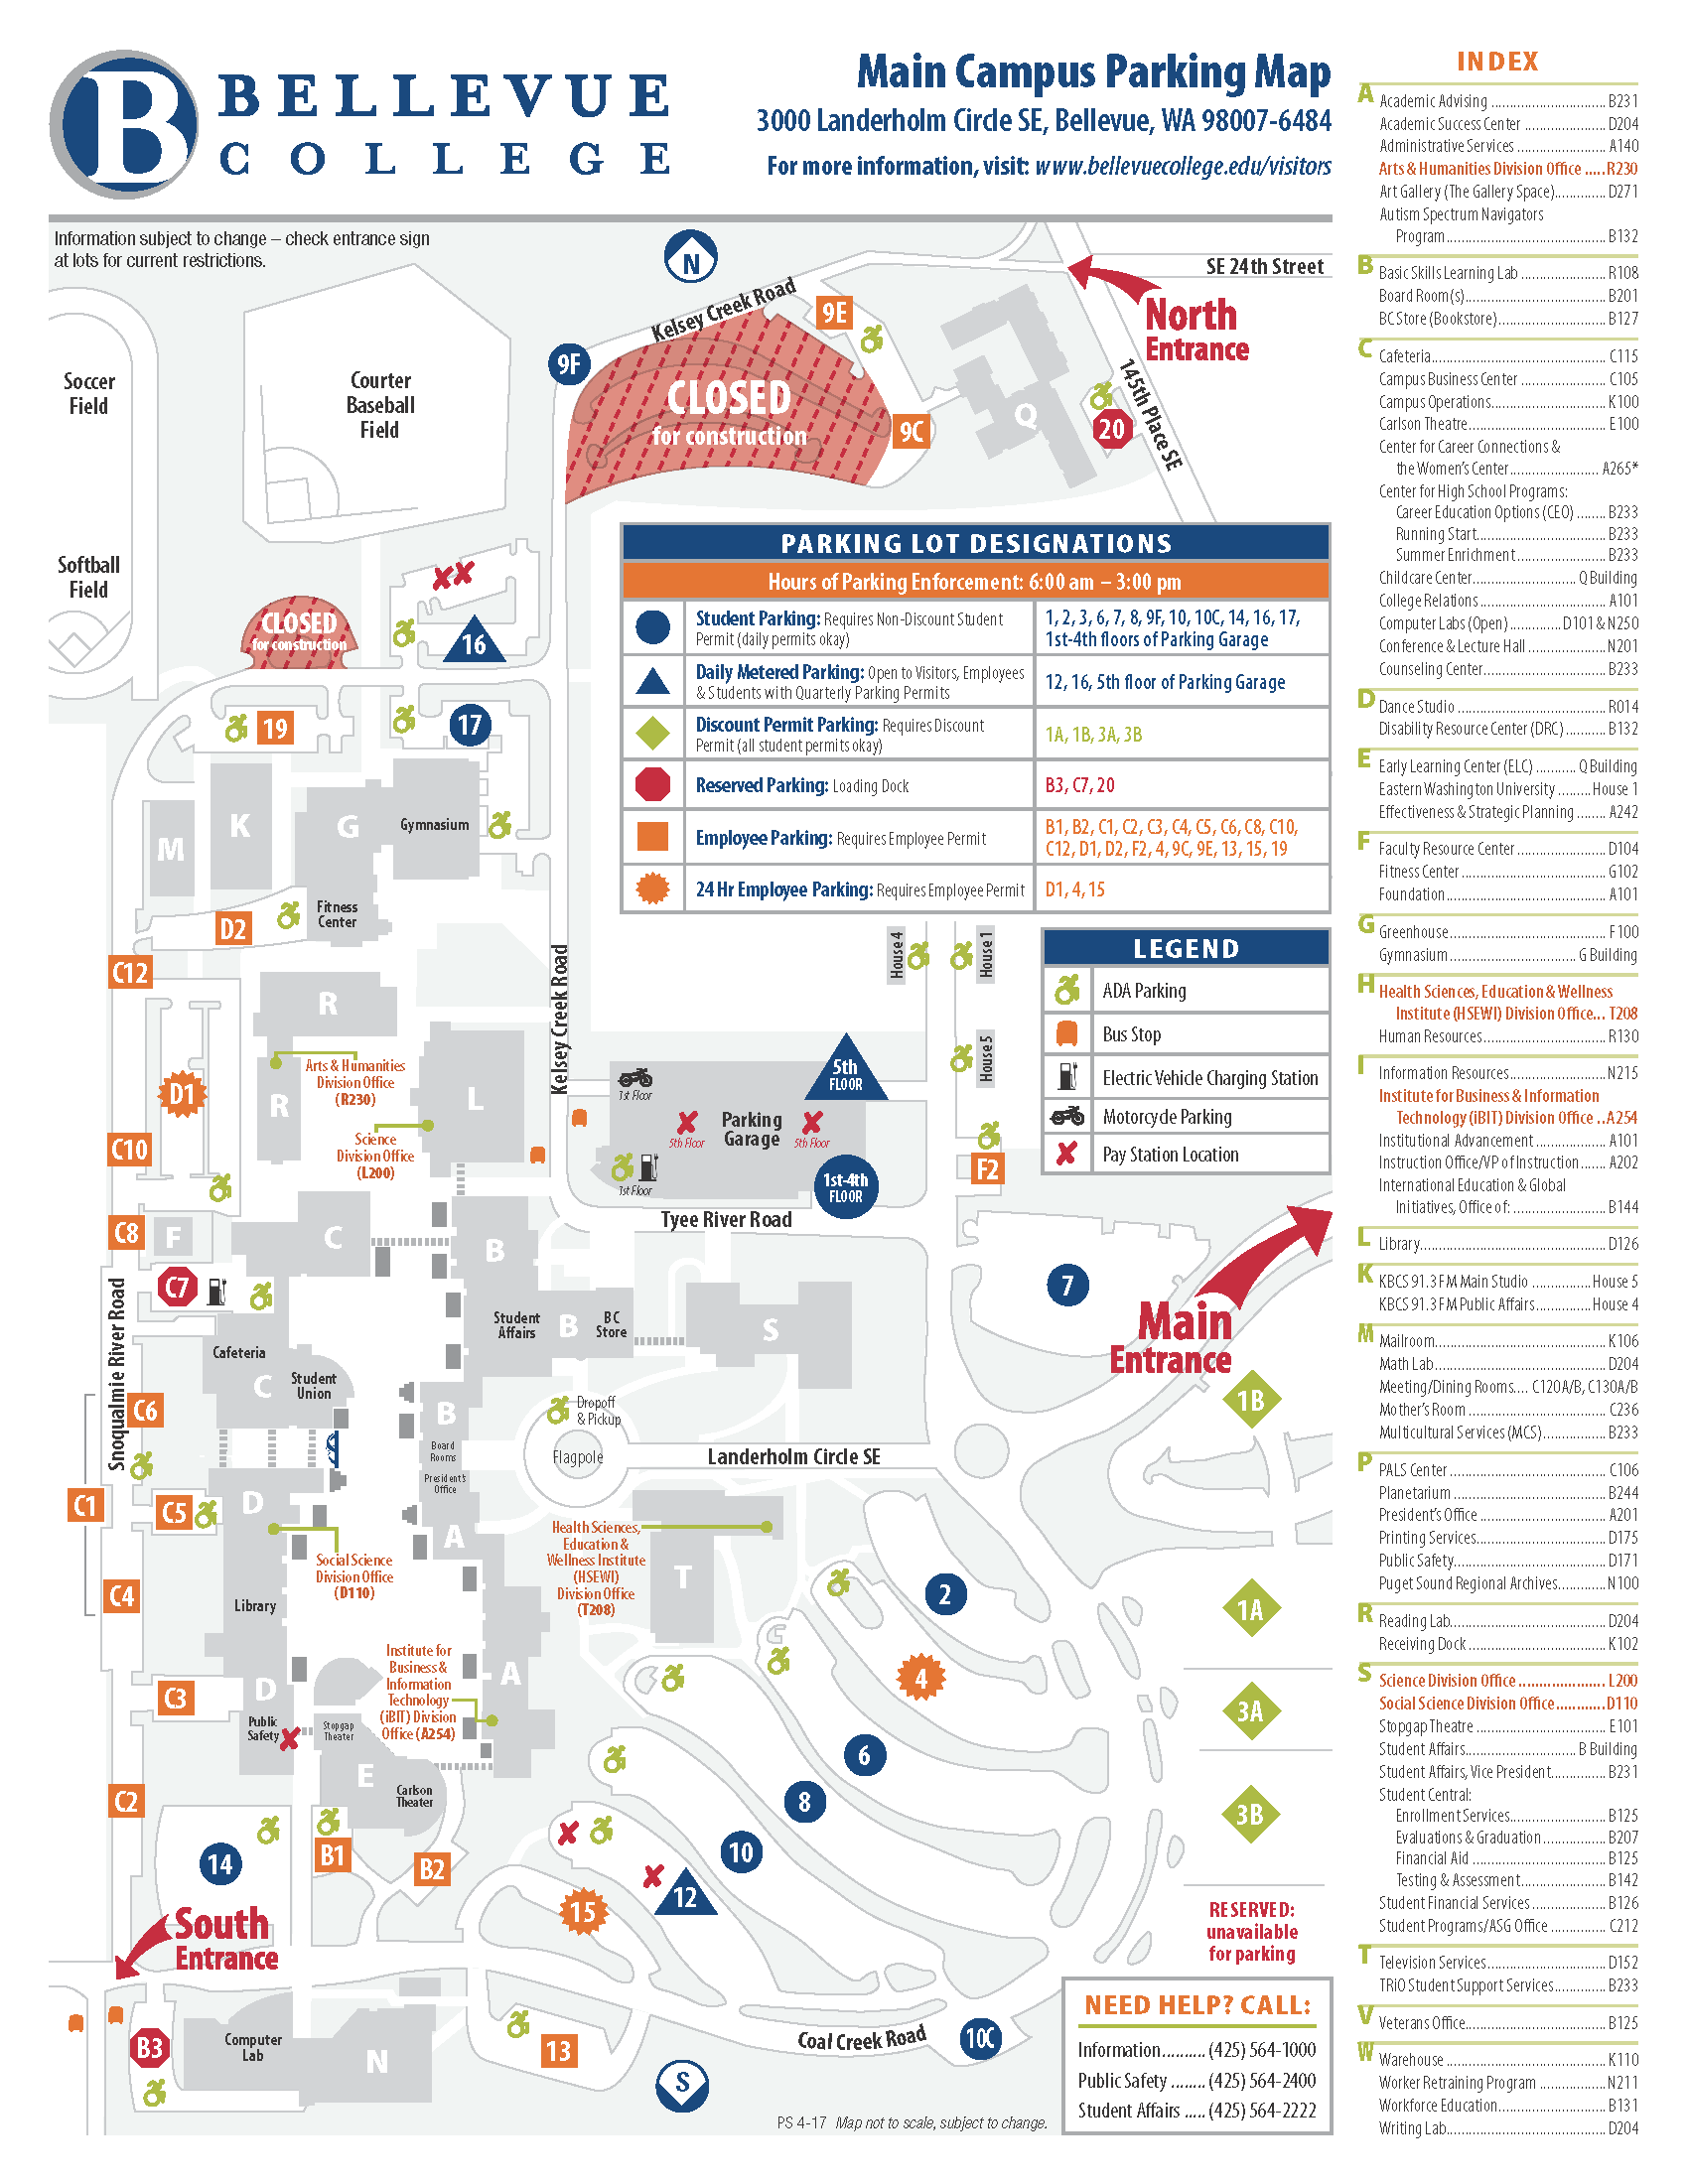 Map Showing Lots 1 3 5 Colored Orange All Other Student And Quarterly Daily Parking Permit